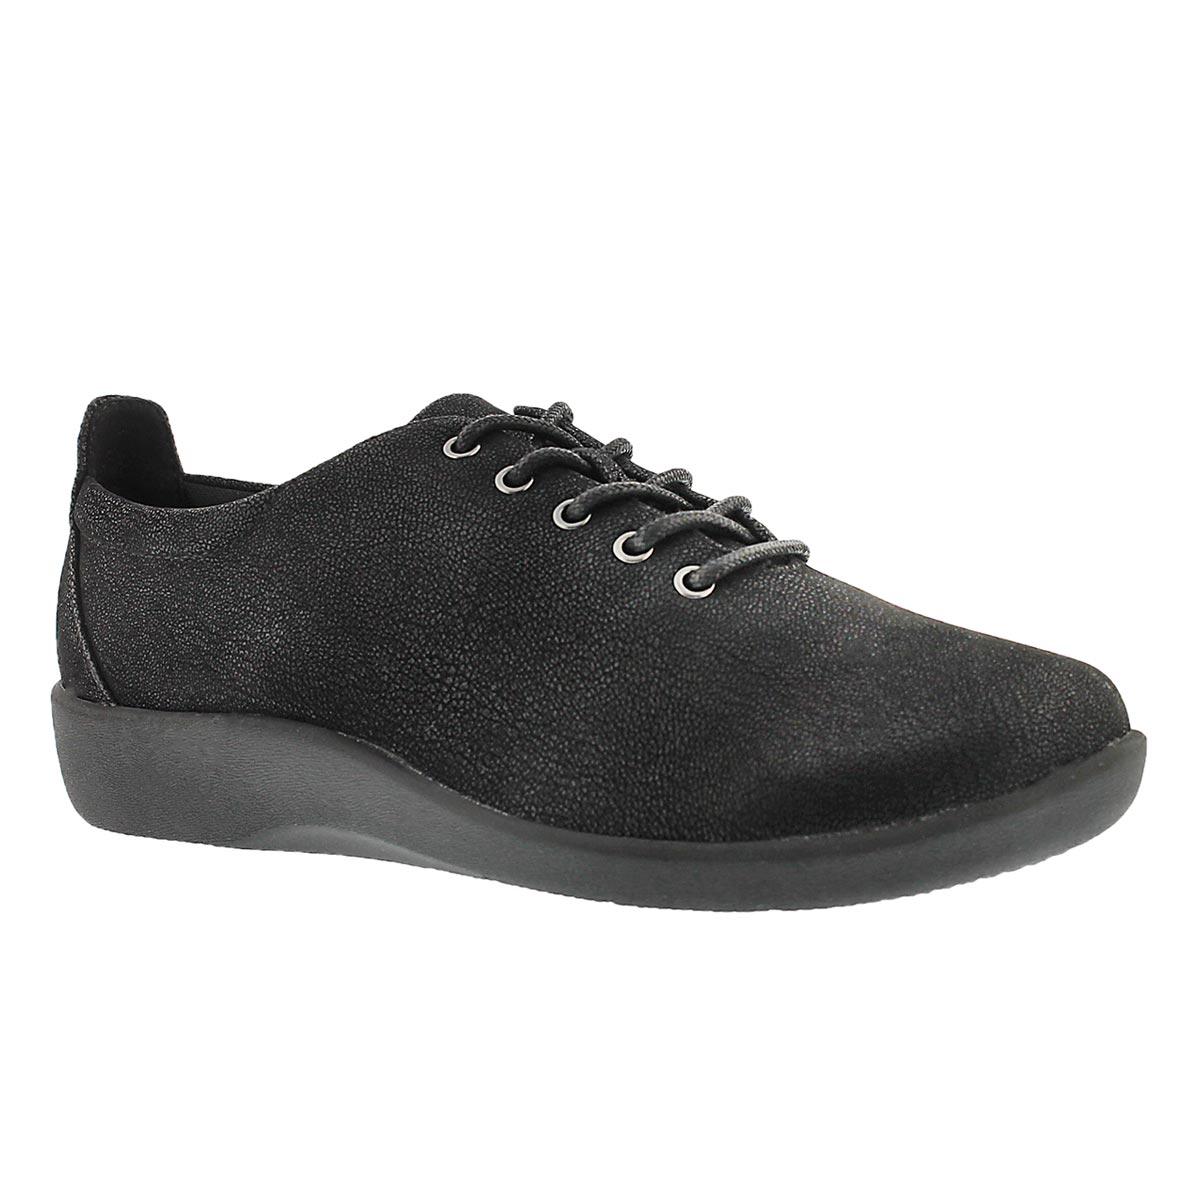 Women's SILLIAN TINO black casual oxfords